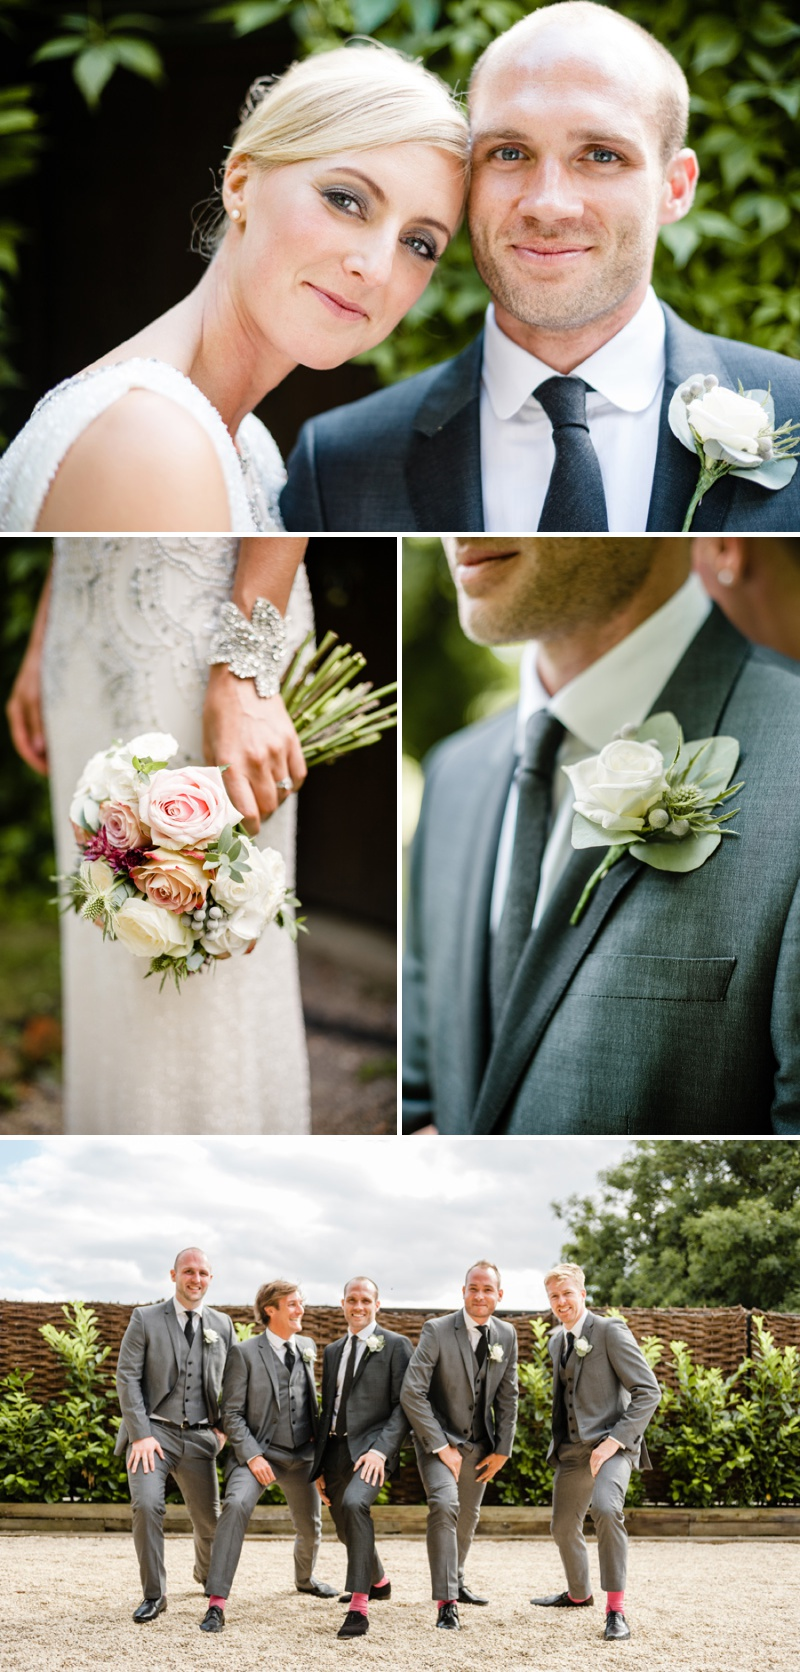 A Beautiful Music Inspired Wedding At The Crazy Bear In Stadhampton With A Jenny Packham Esme Wedding Dress and A Pink And Cream Avalanche Rose Bouquet._0007